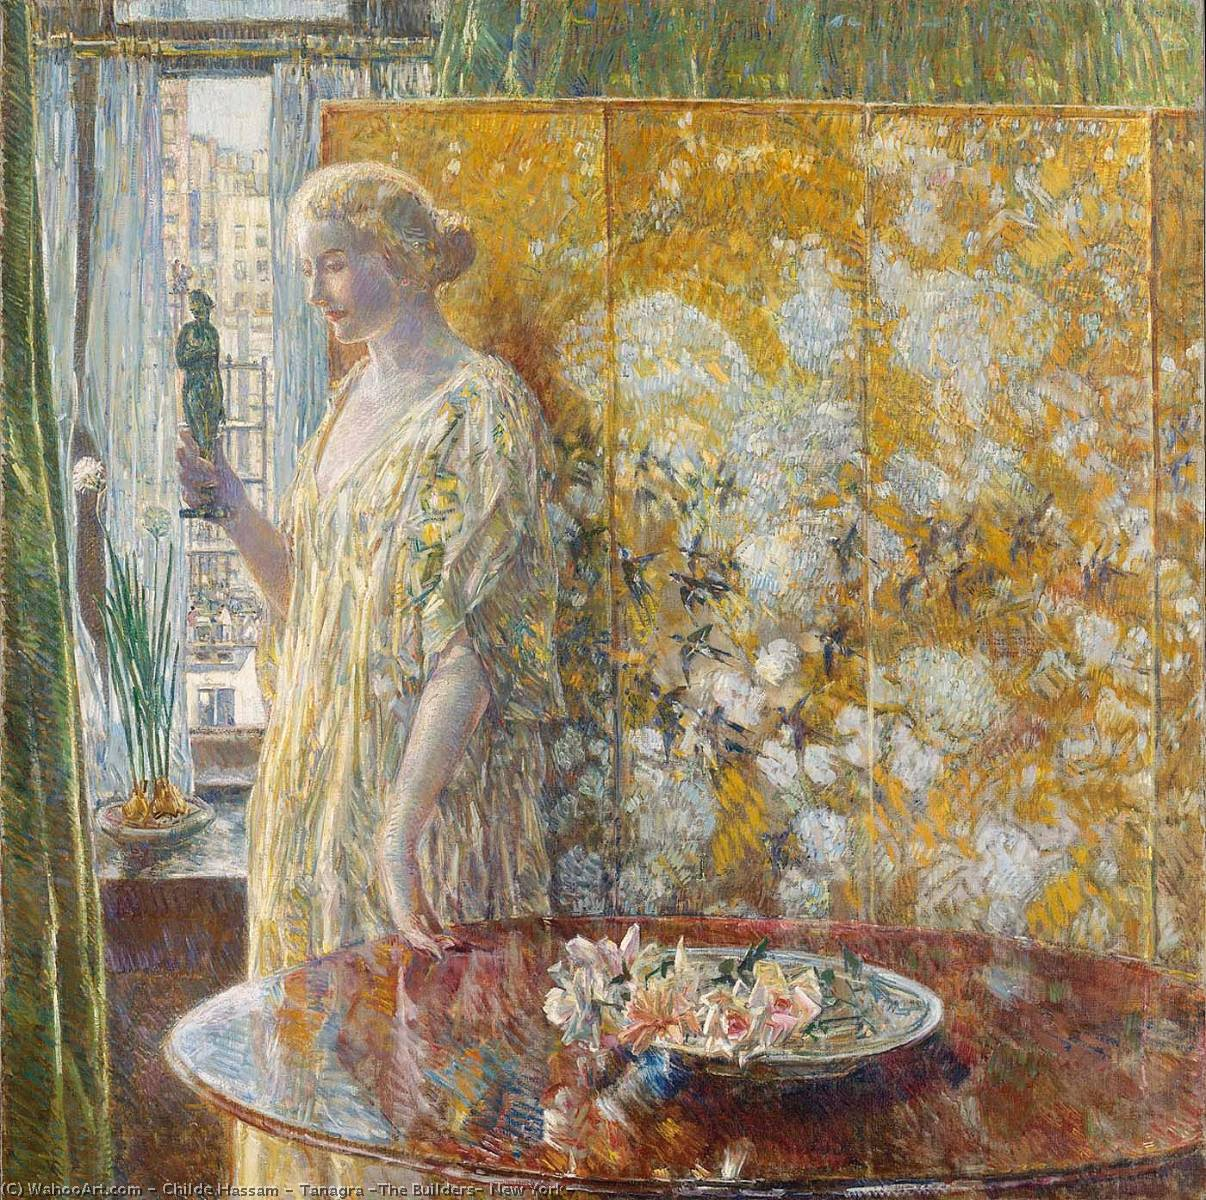 famous painting Tanagra ( die builders , new york ) of Frederick Childe Hassam